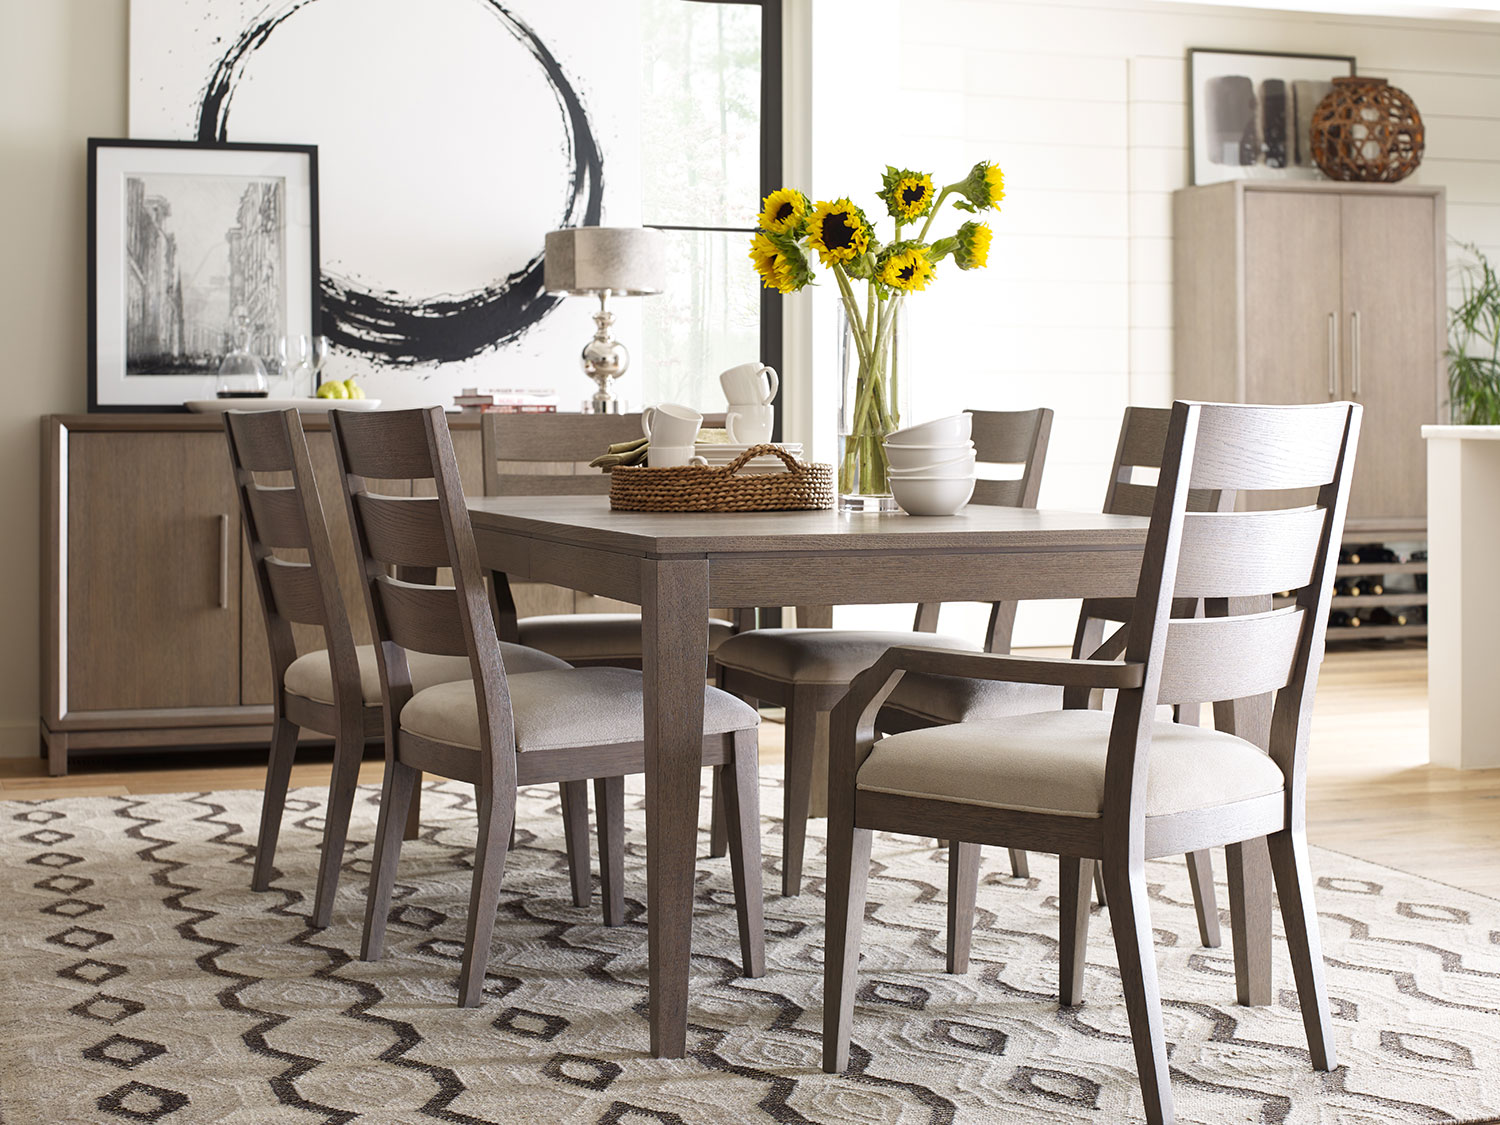 The Rachael Ray Highline Dining Room Collection - Greige